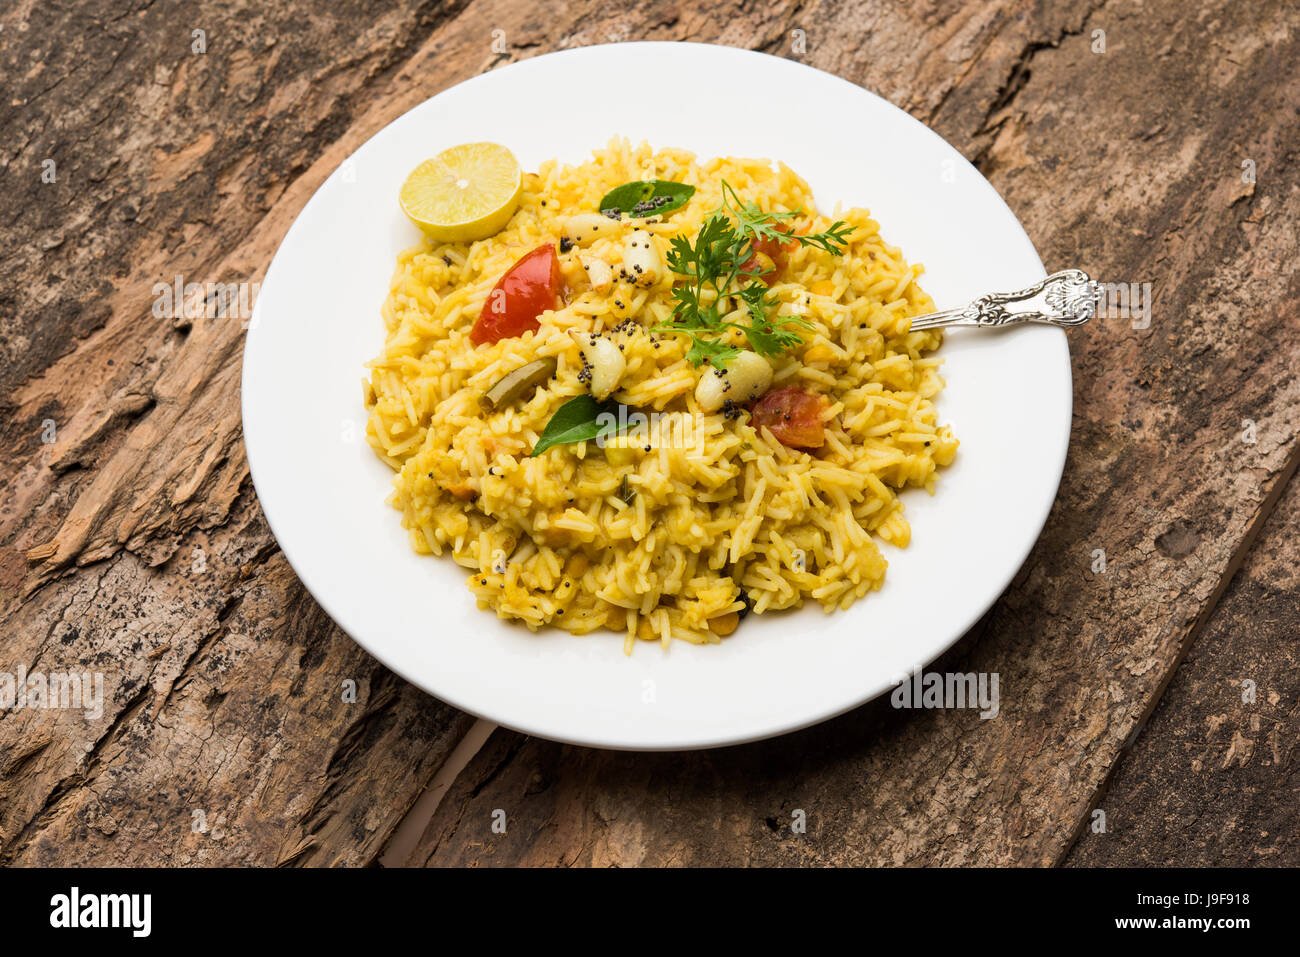 Asian Cuisine Jhelum Pakistan Food Stock Photos And Pakistan Food Stock Images